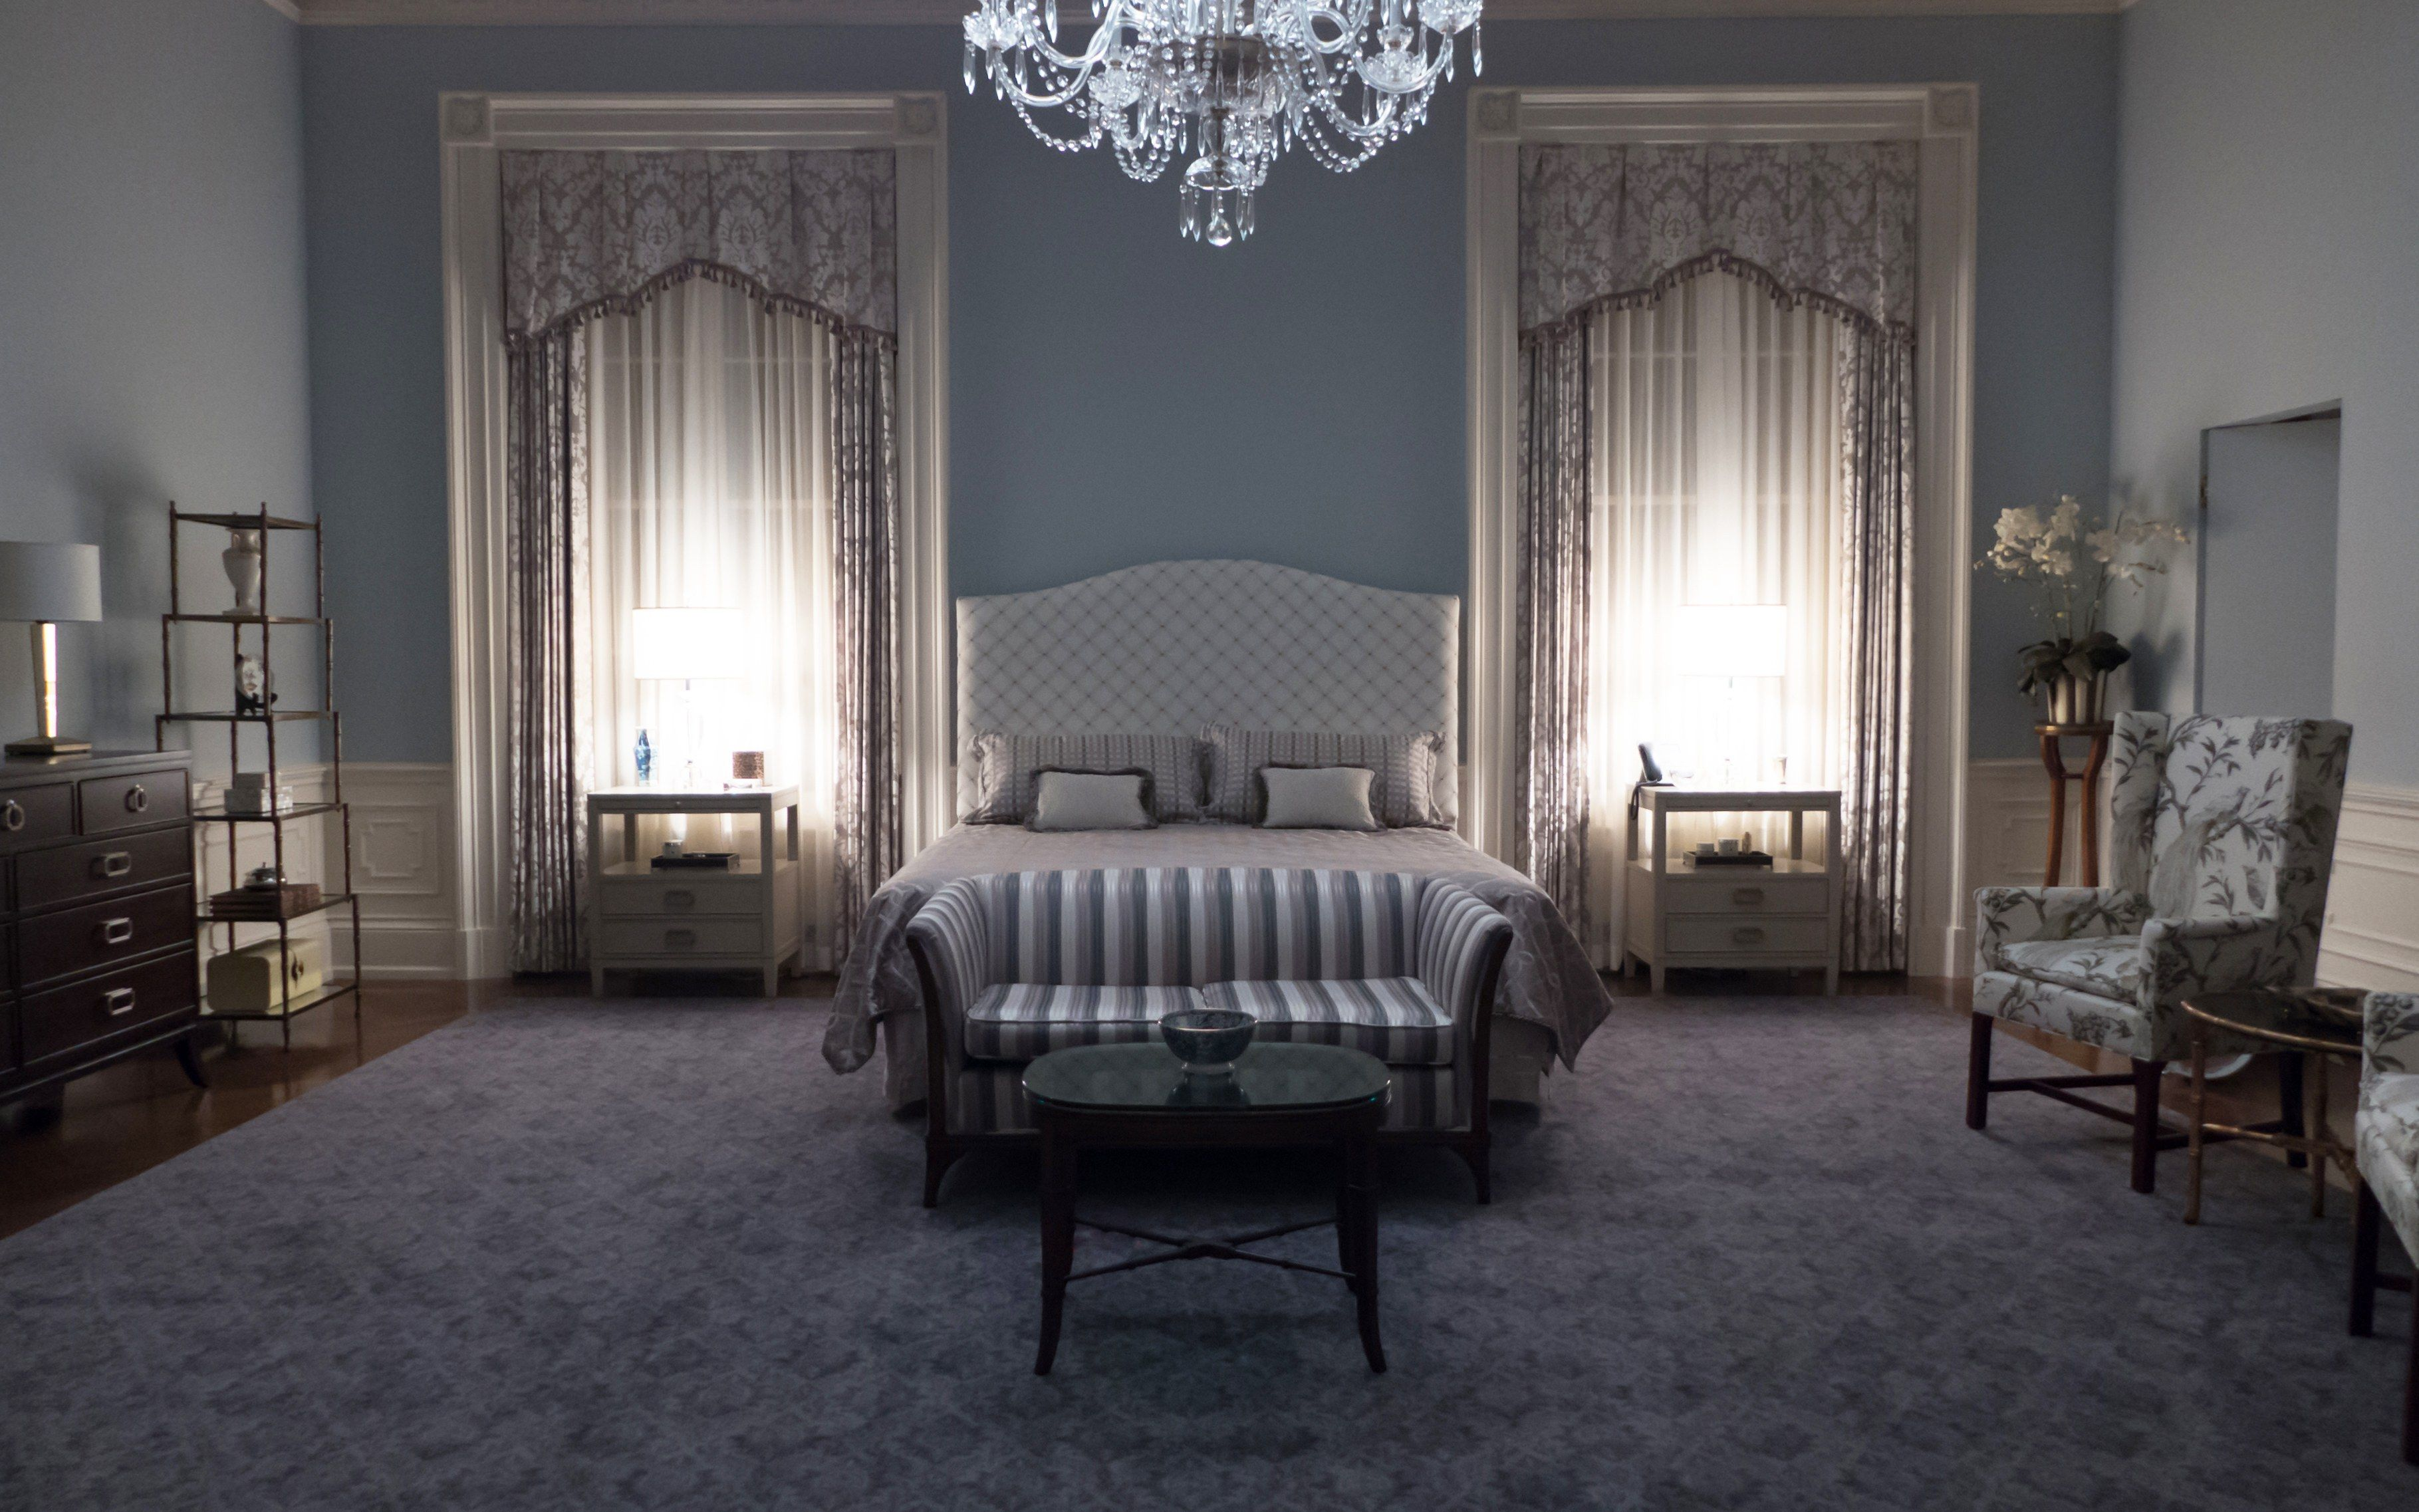 Tour the High Drama Sets of House of Cards Bed Pinterest